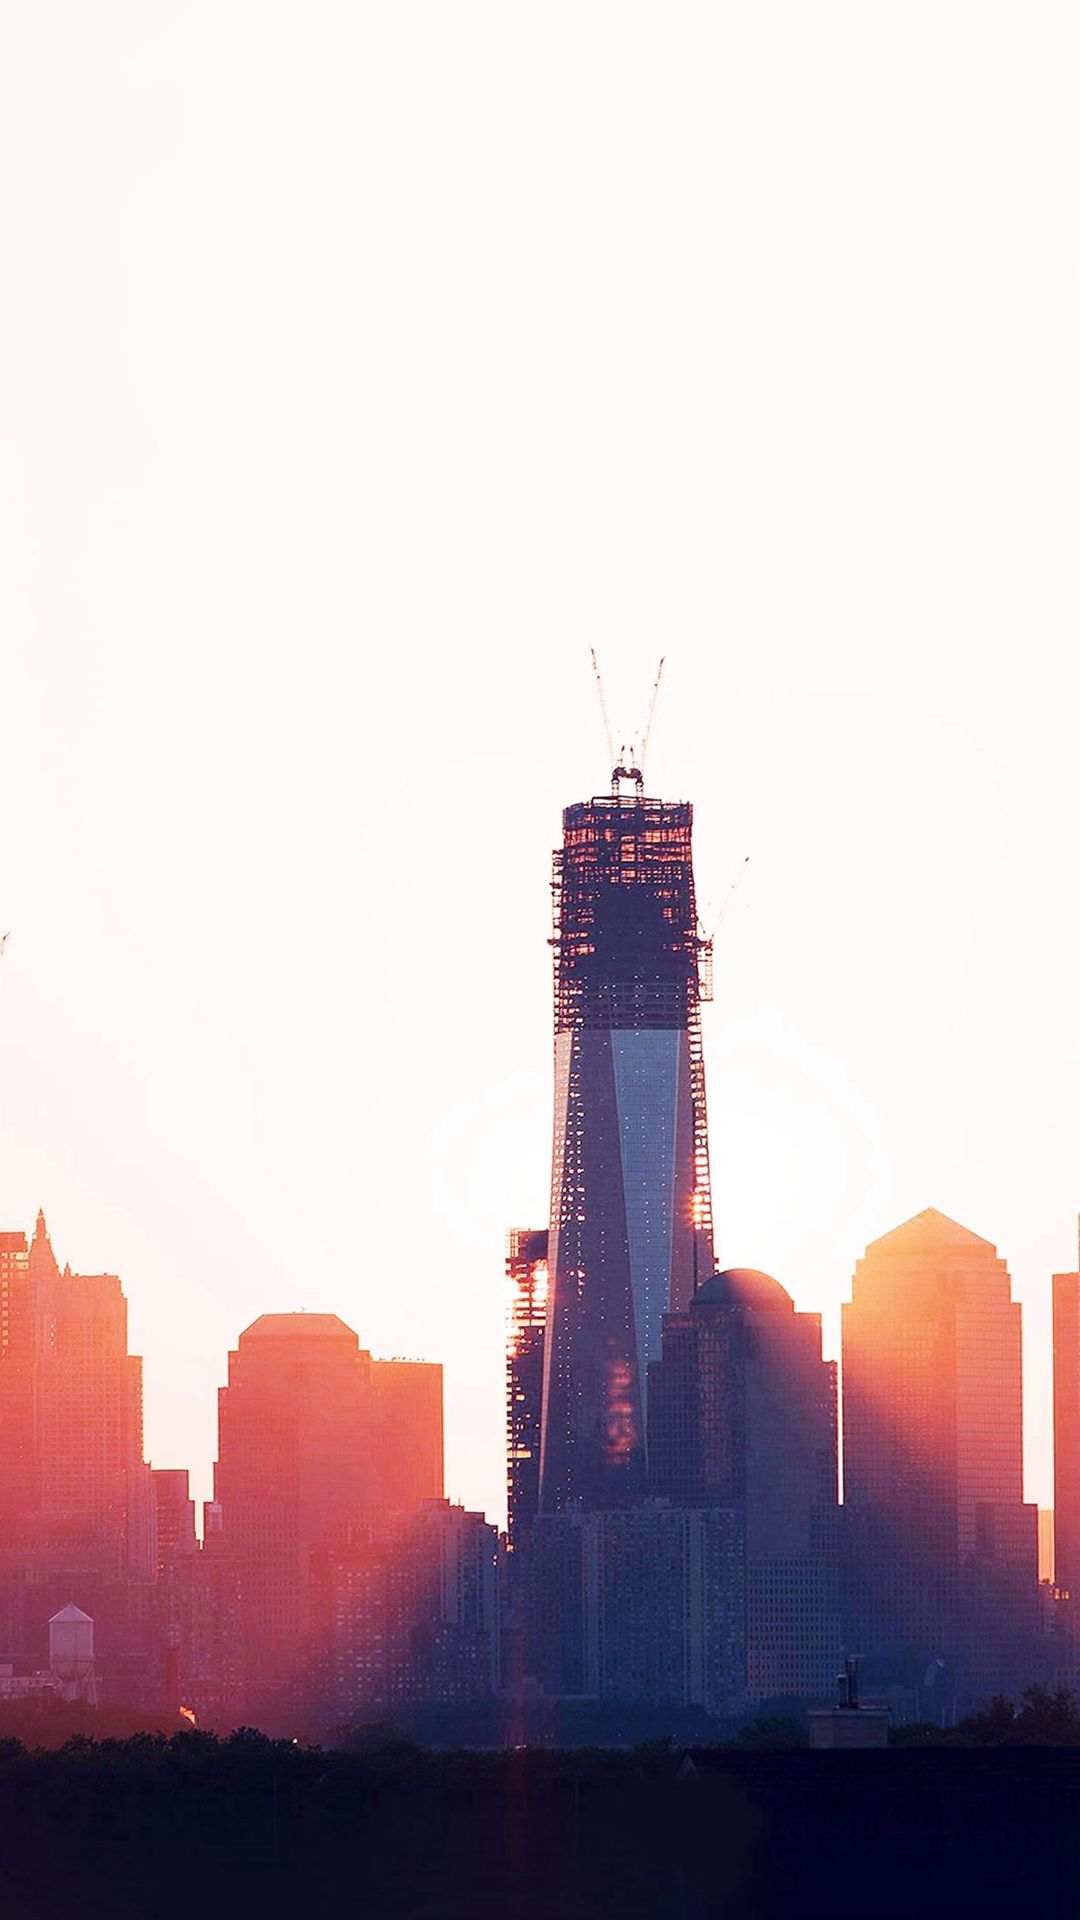 Construction Sky Line Sunset City Day IPhone 6 Plus Wallpaper